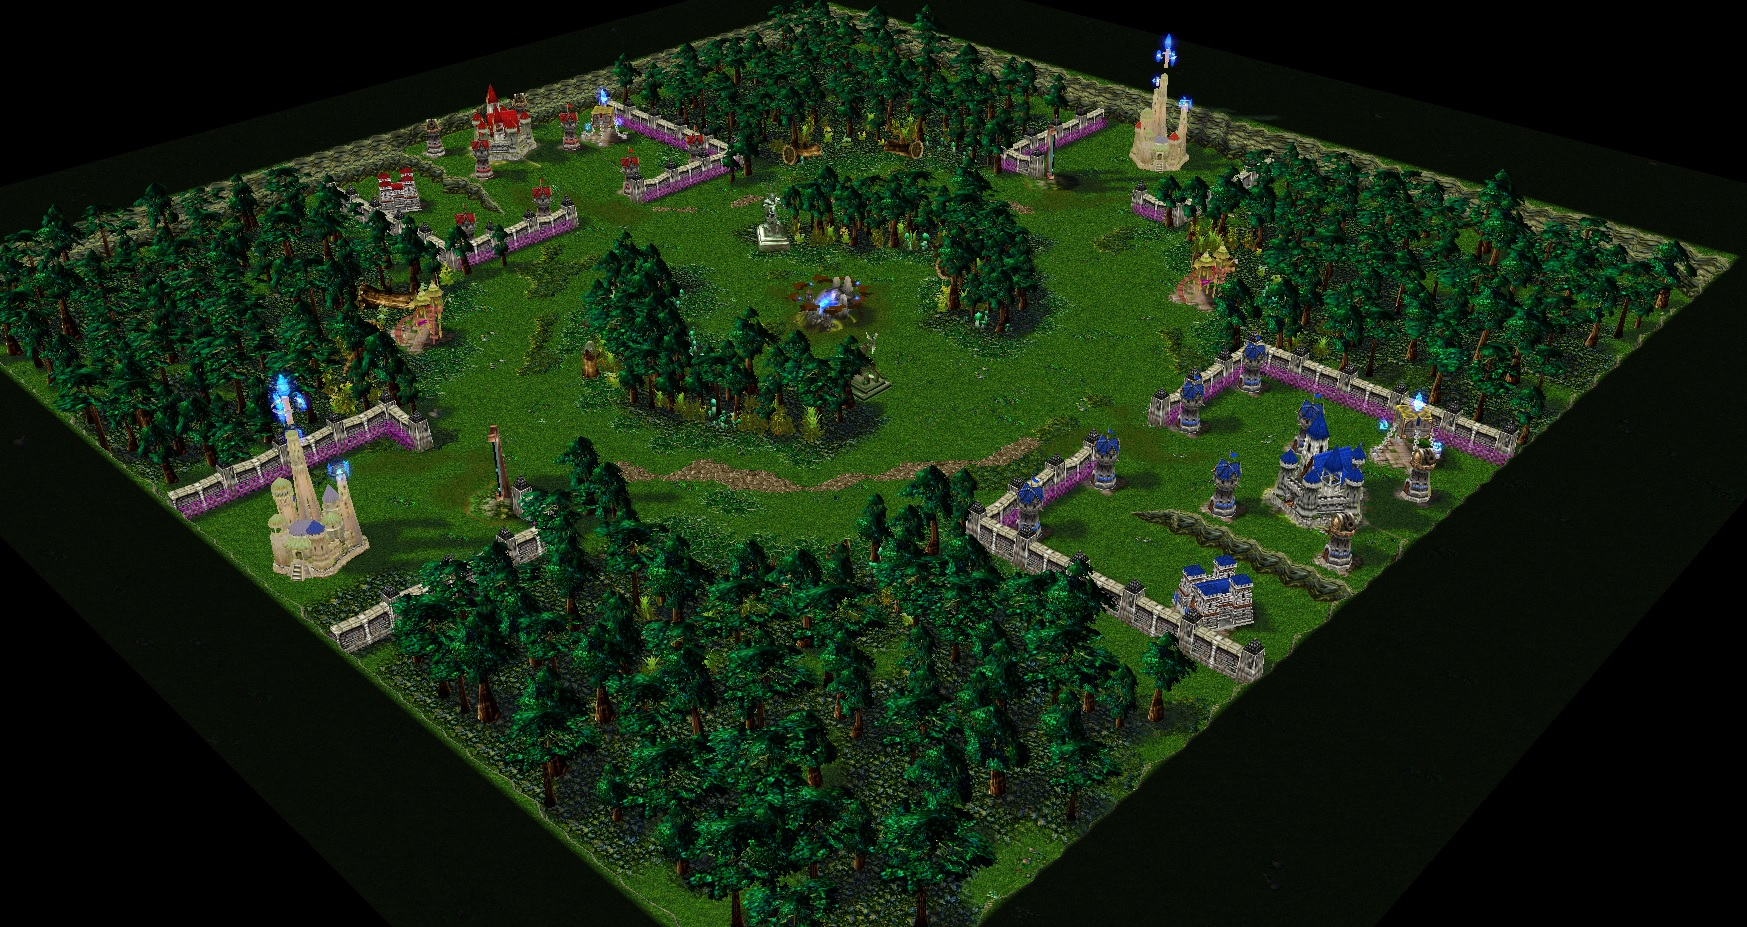 Warcraft 3 maps timothy johnson ultimately it was while working on these maps and interacting with the trigger system that i developed an interest in programming that led me to pursue a gumiabroncs Image collections